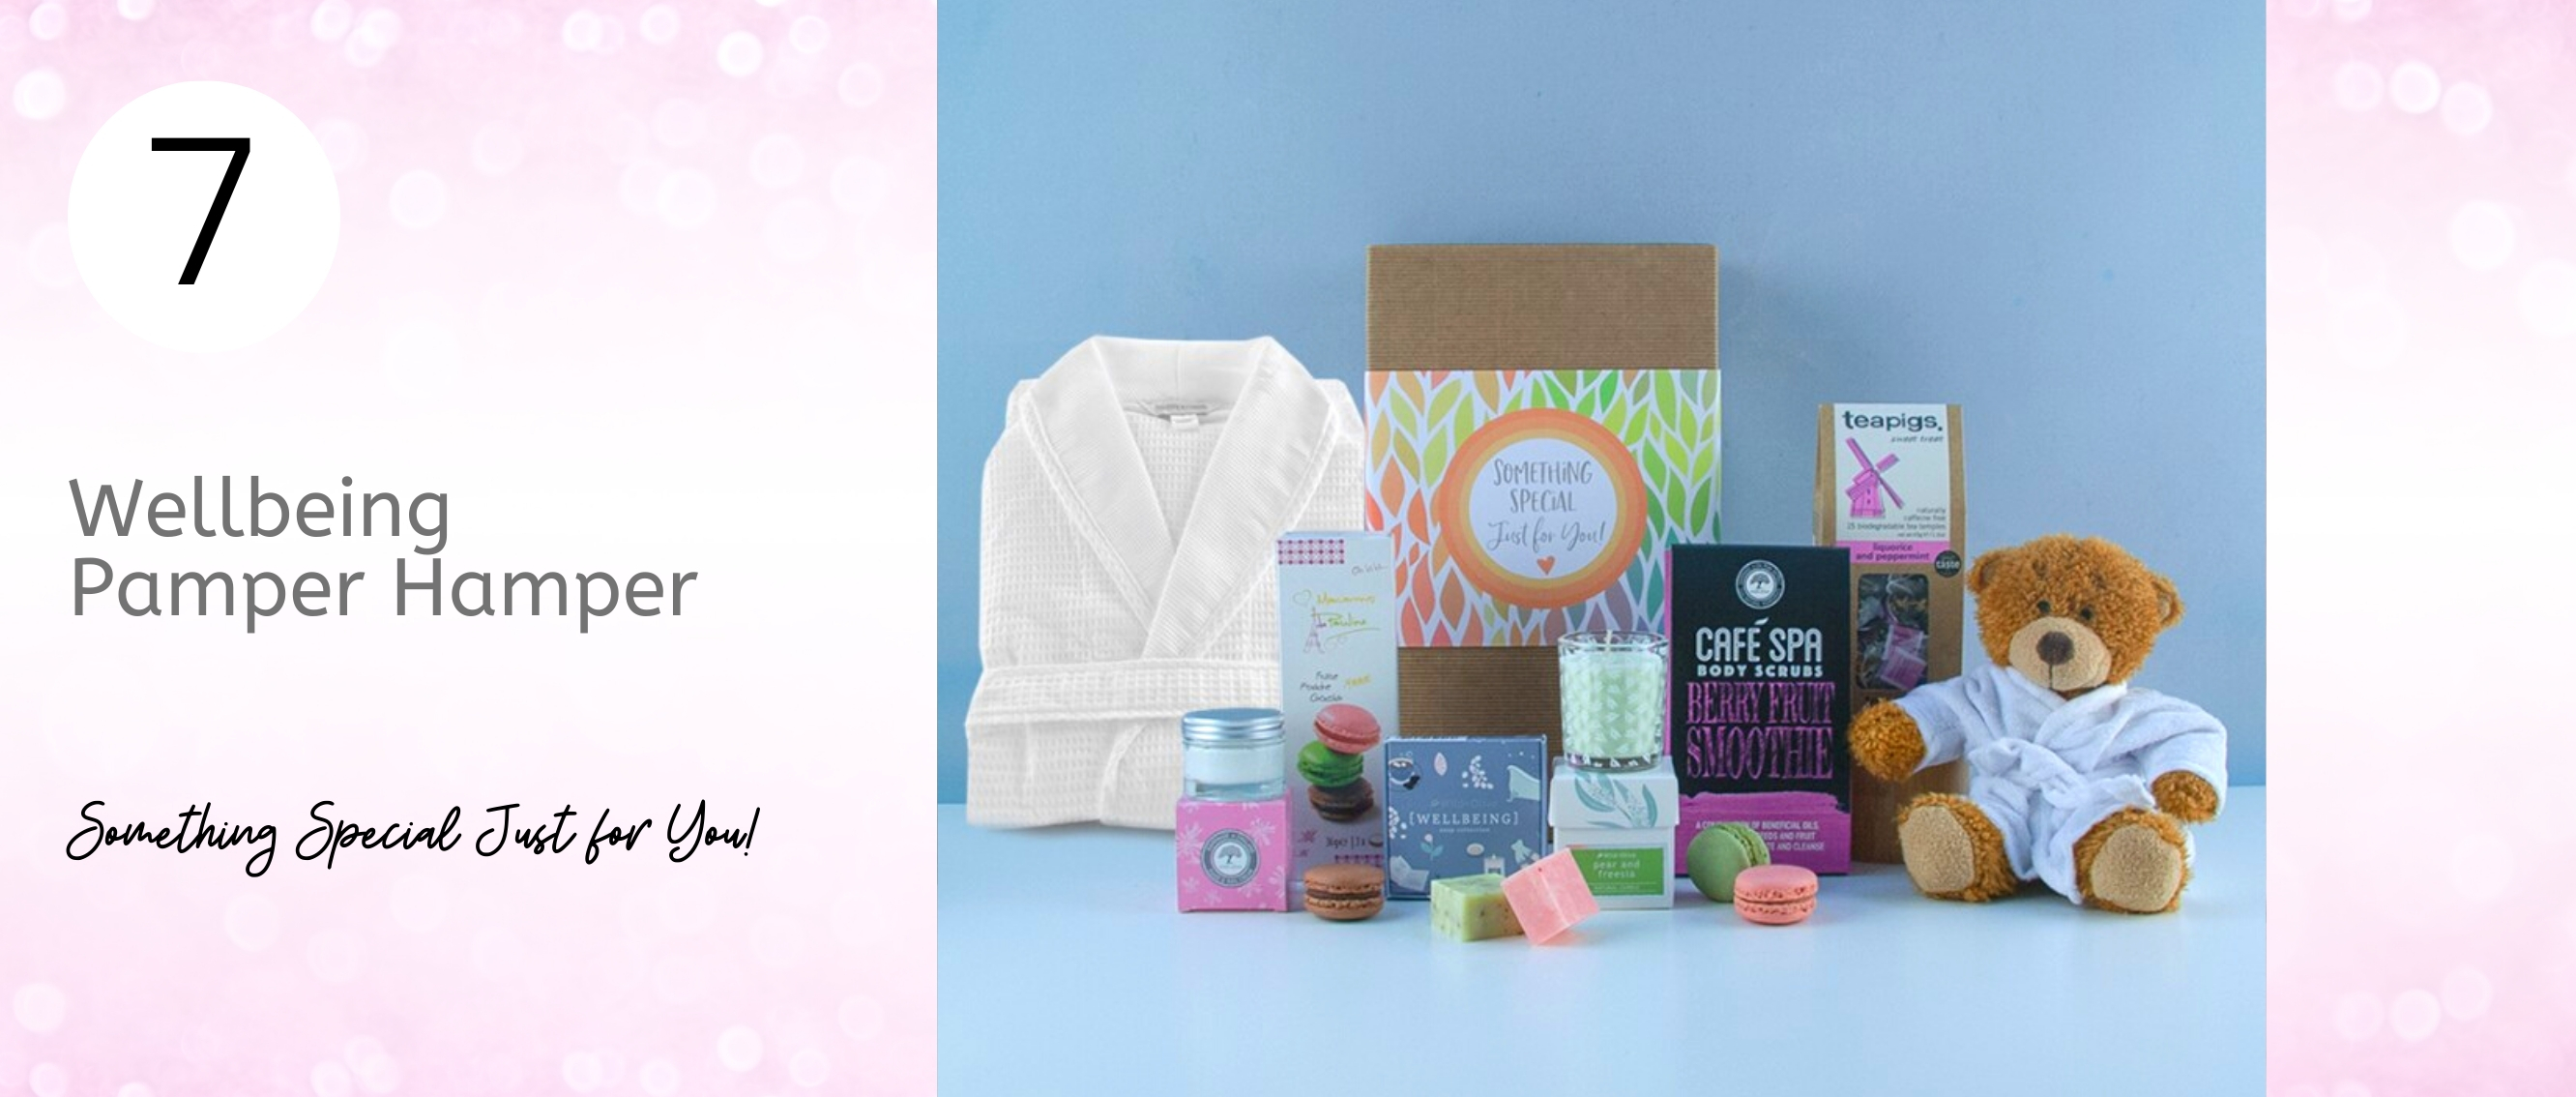 Bring the spa to Mum with this Wellbeing Pamper Hamper...